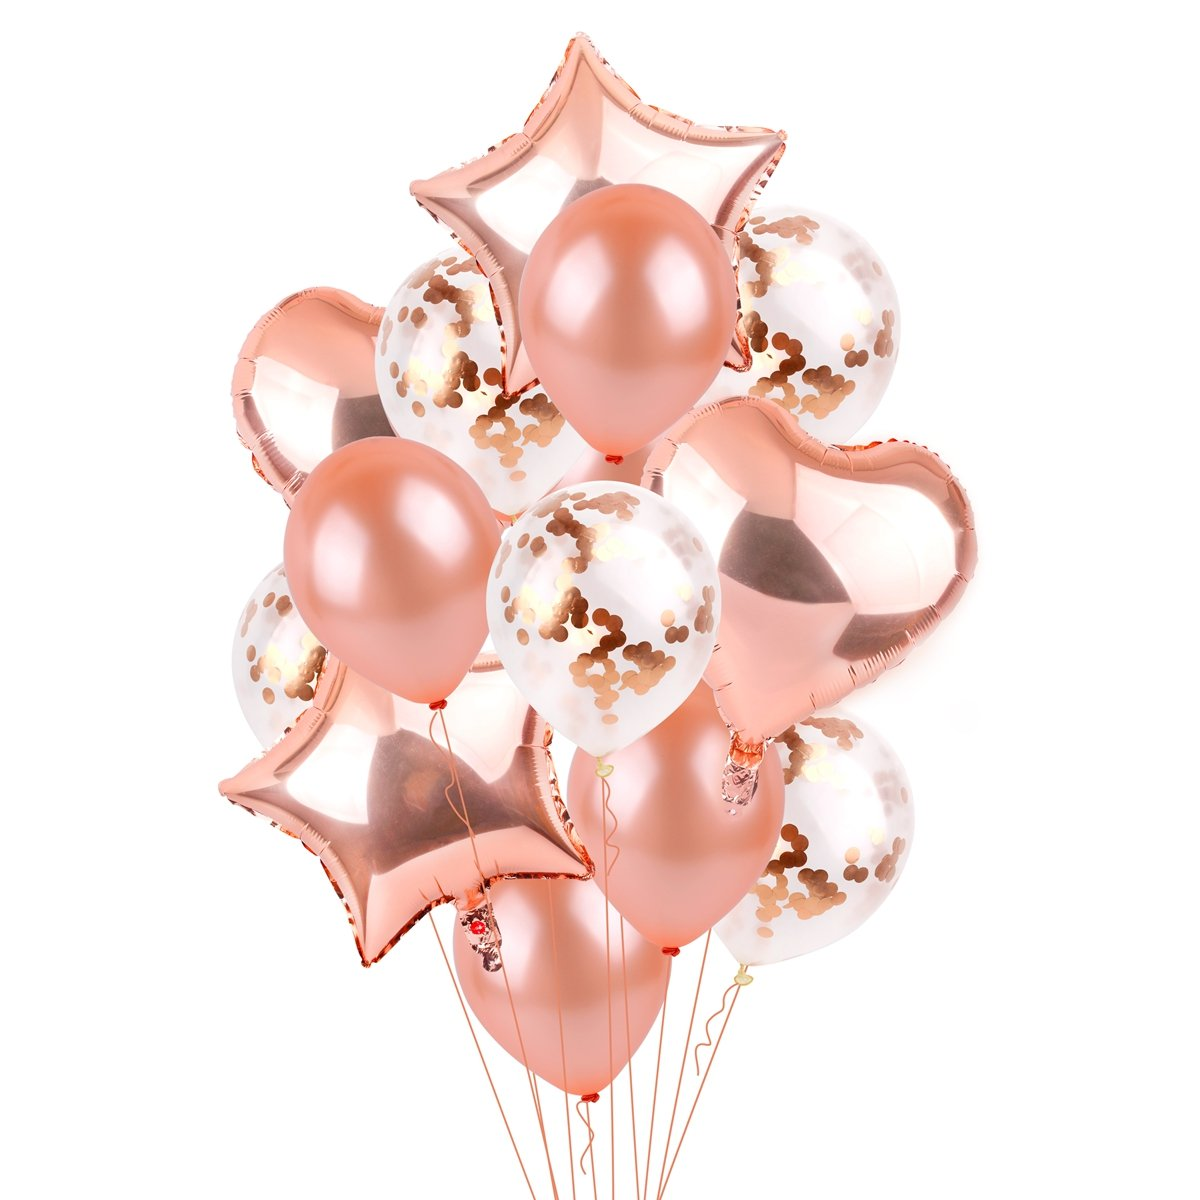 Rose Gold Balloons Party Decorations - FengRise 2018 Pack of 14,12 inch Rose Gold Confetti Prefilled and Latex Balloons&18 inch Star Heart Balloons for Birthday Party,Wedding,Baby Shower,Graduation by FengRise